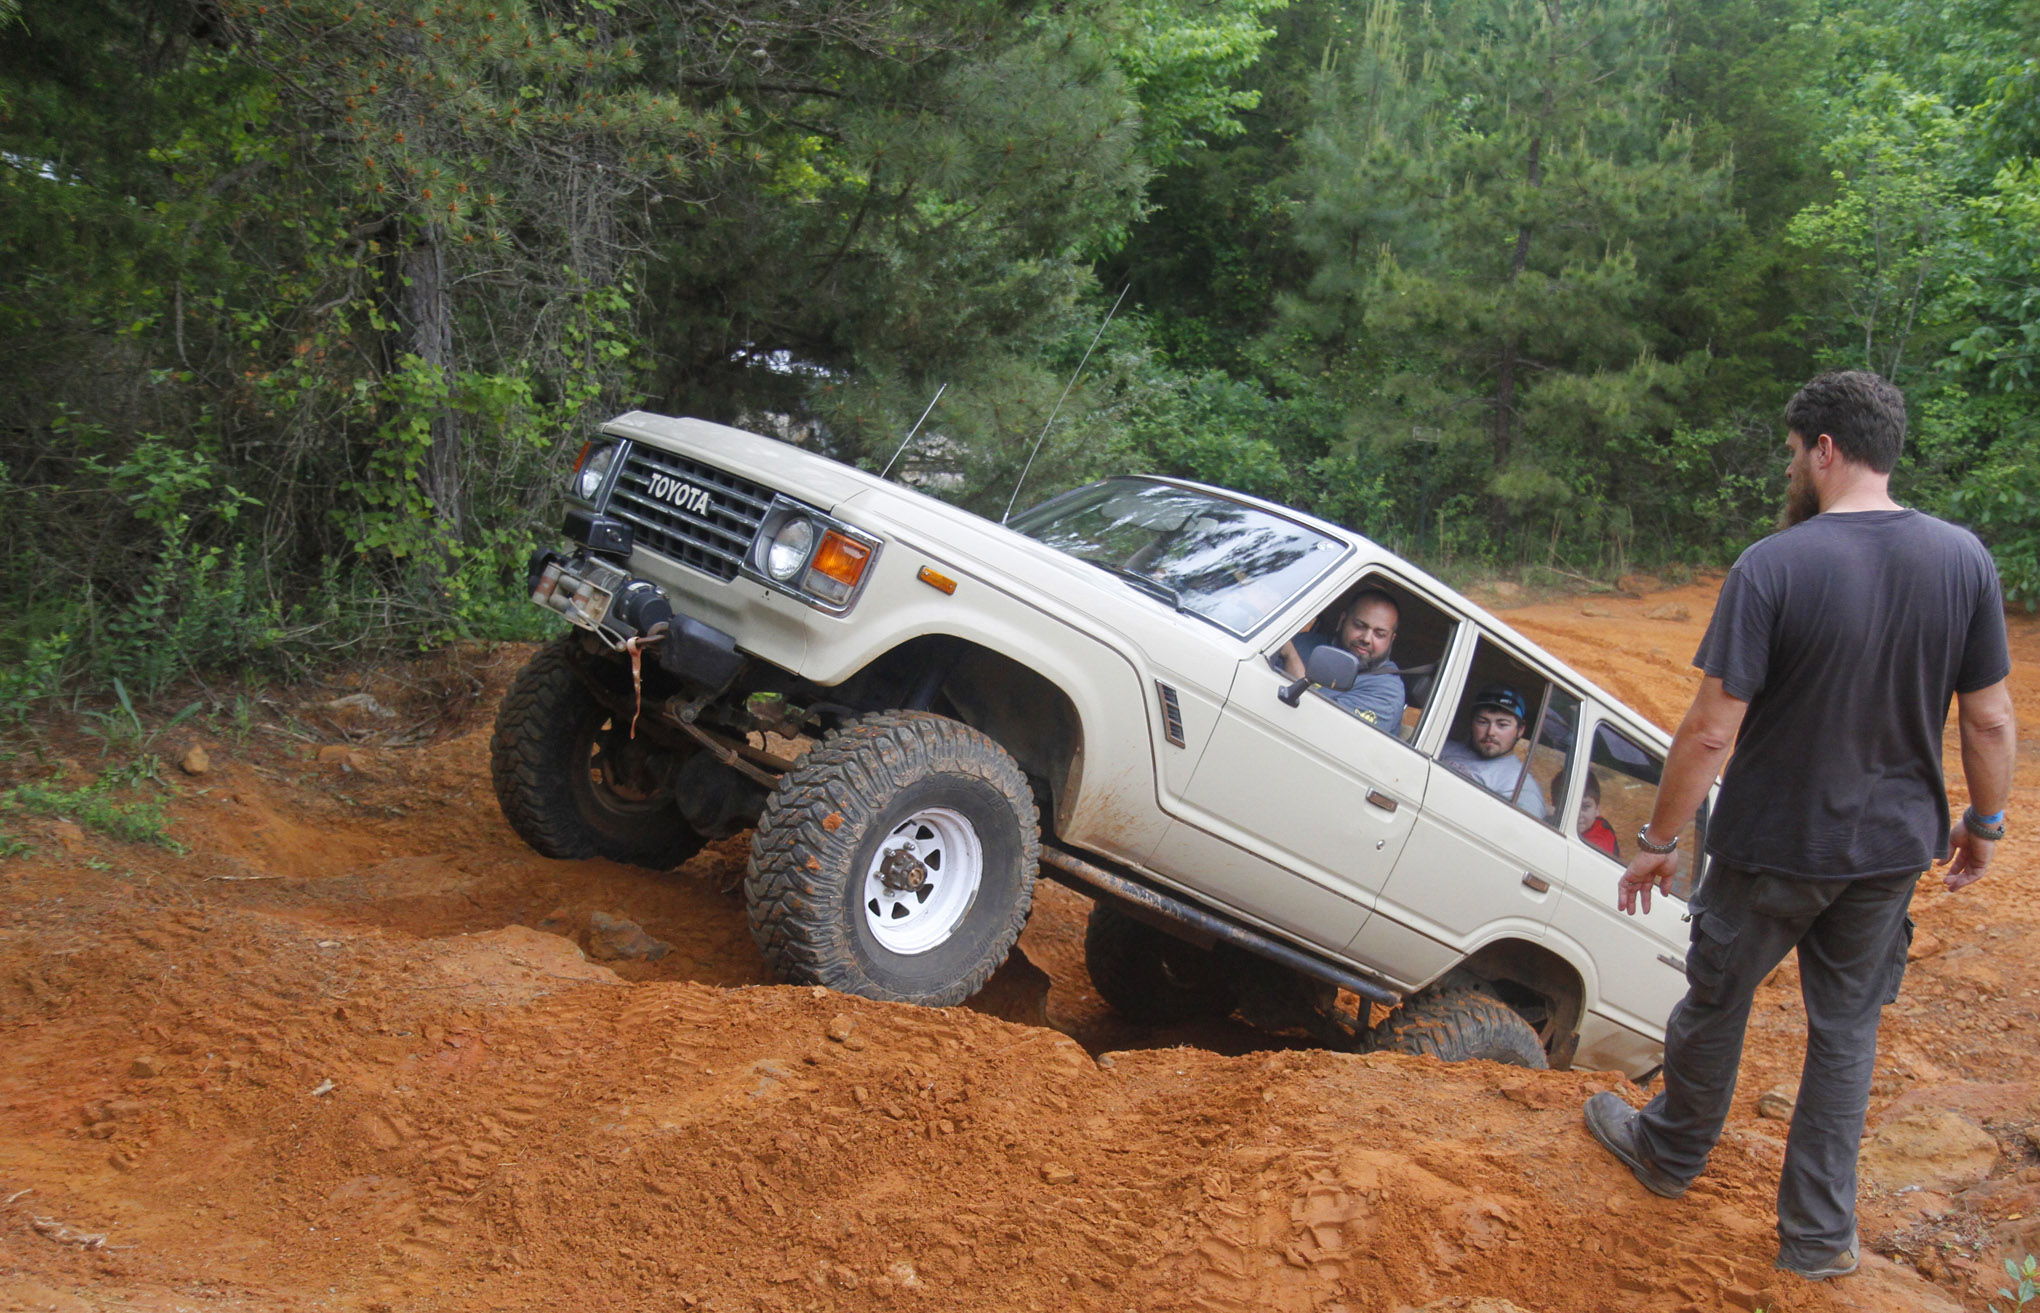 Along with the newer Toyotas we saw a handful of FJ60 Cruisers at the event. This driver was well experienced and brought the whole family along for the trail runs.